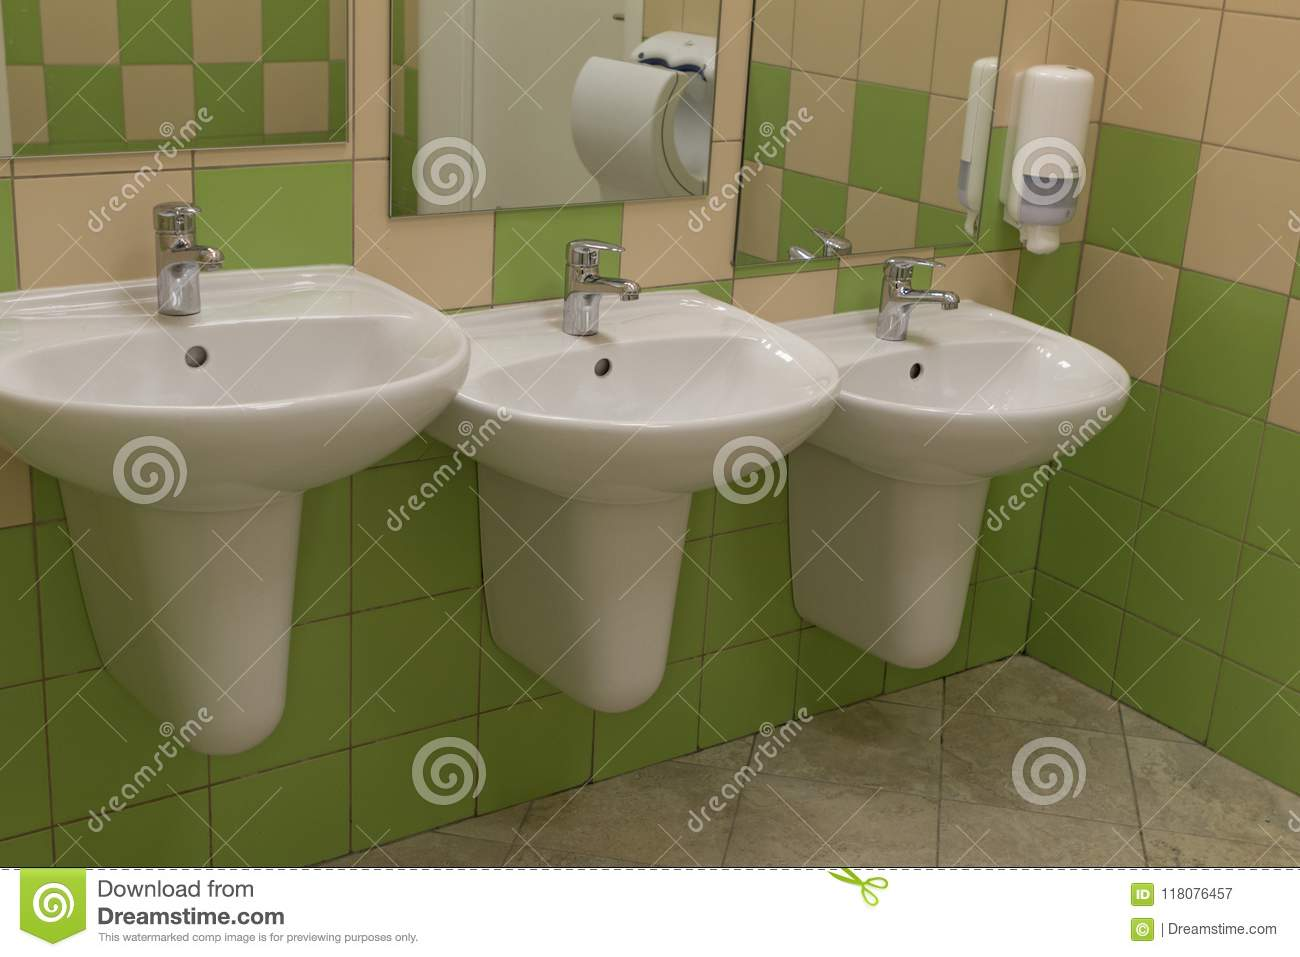 Three Sinks Of Different Heights In A Public Toilet Stock Image ...